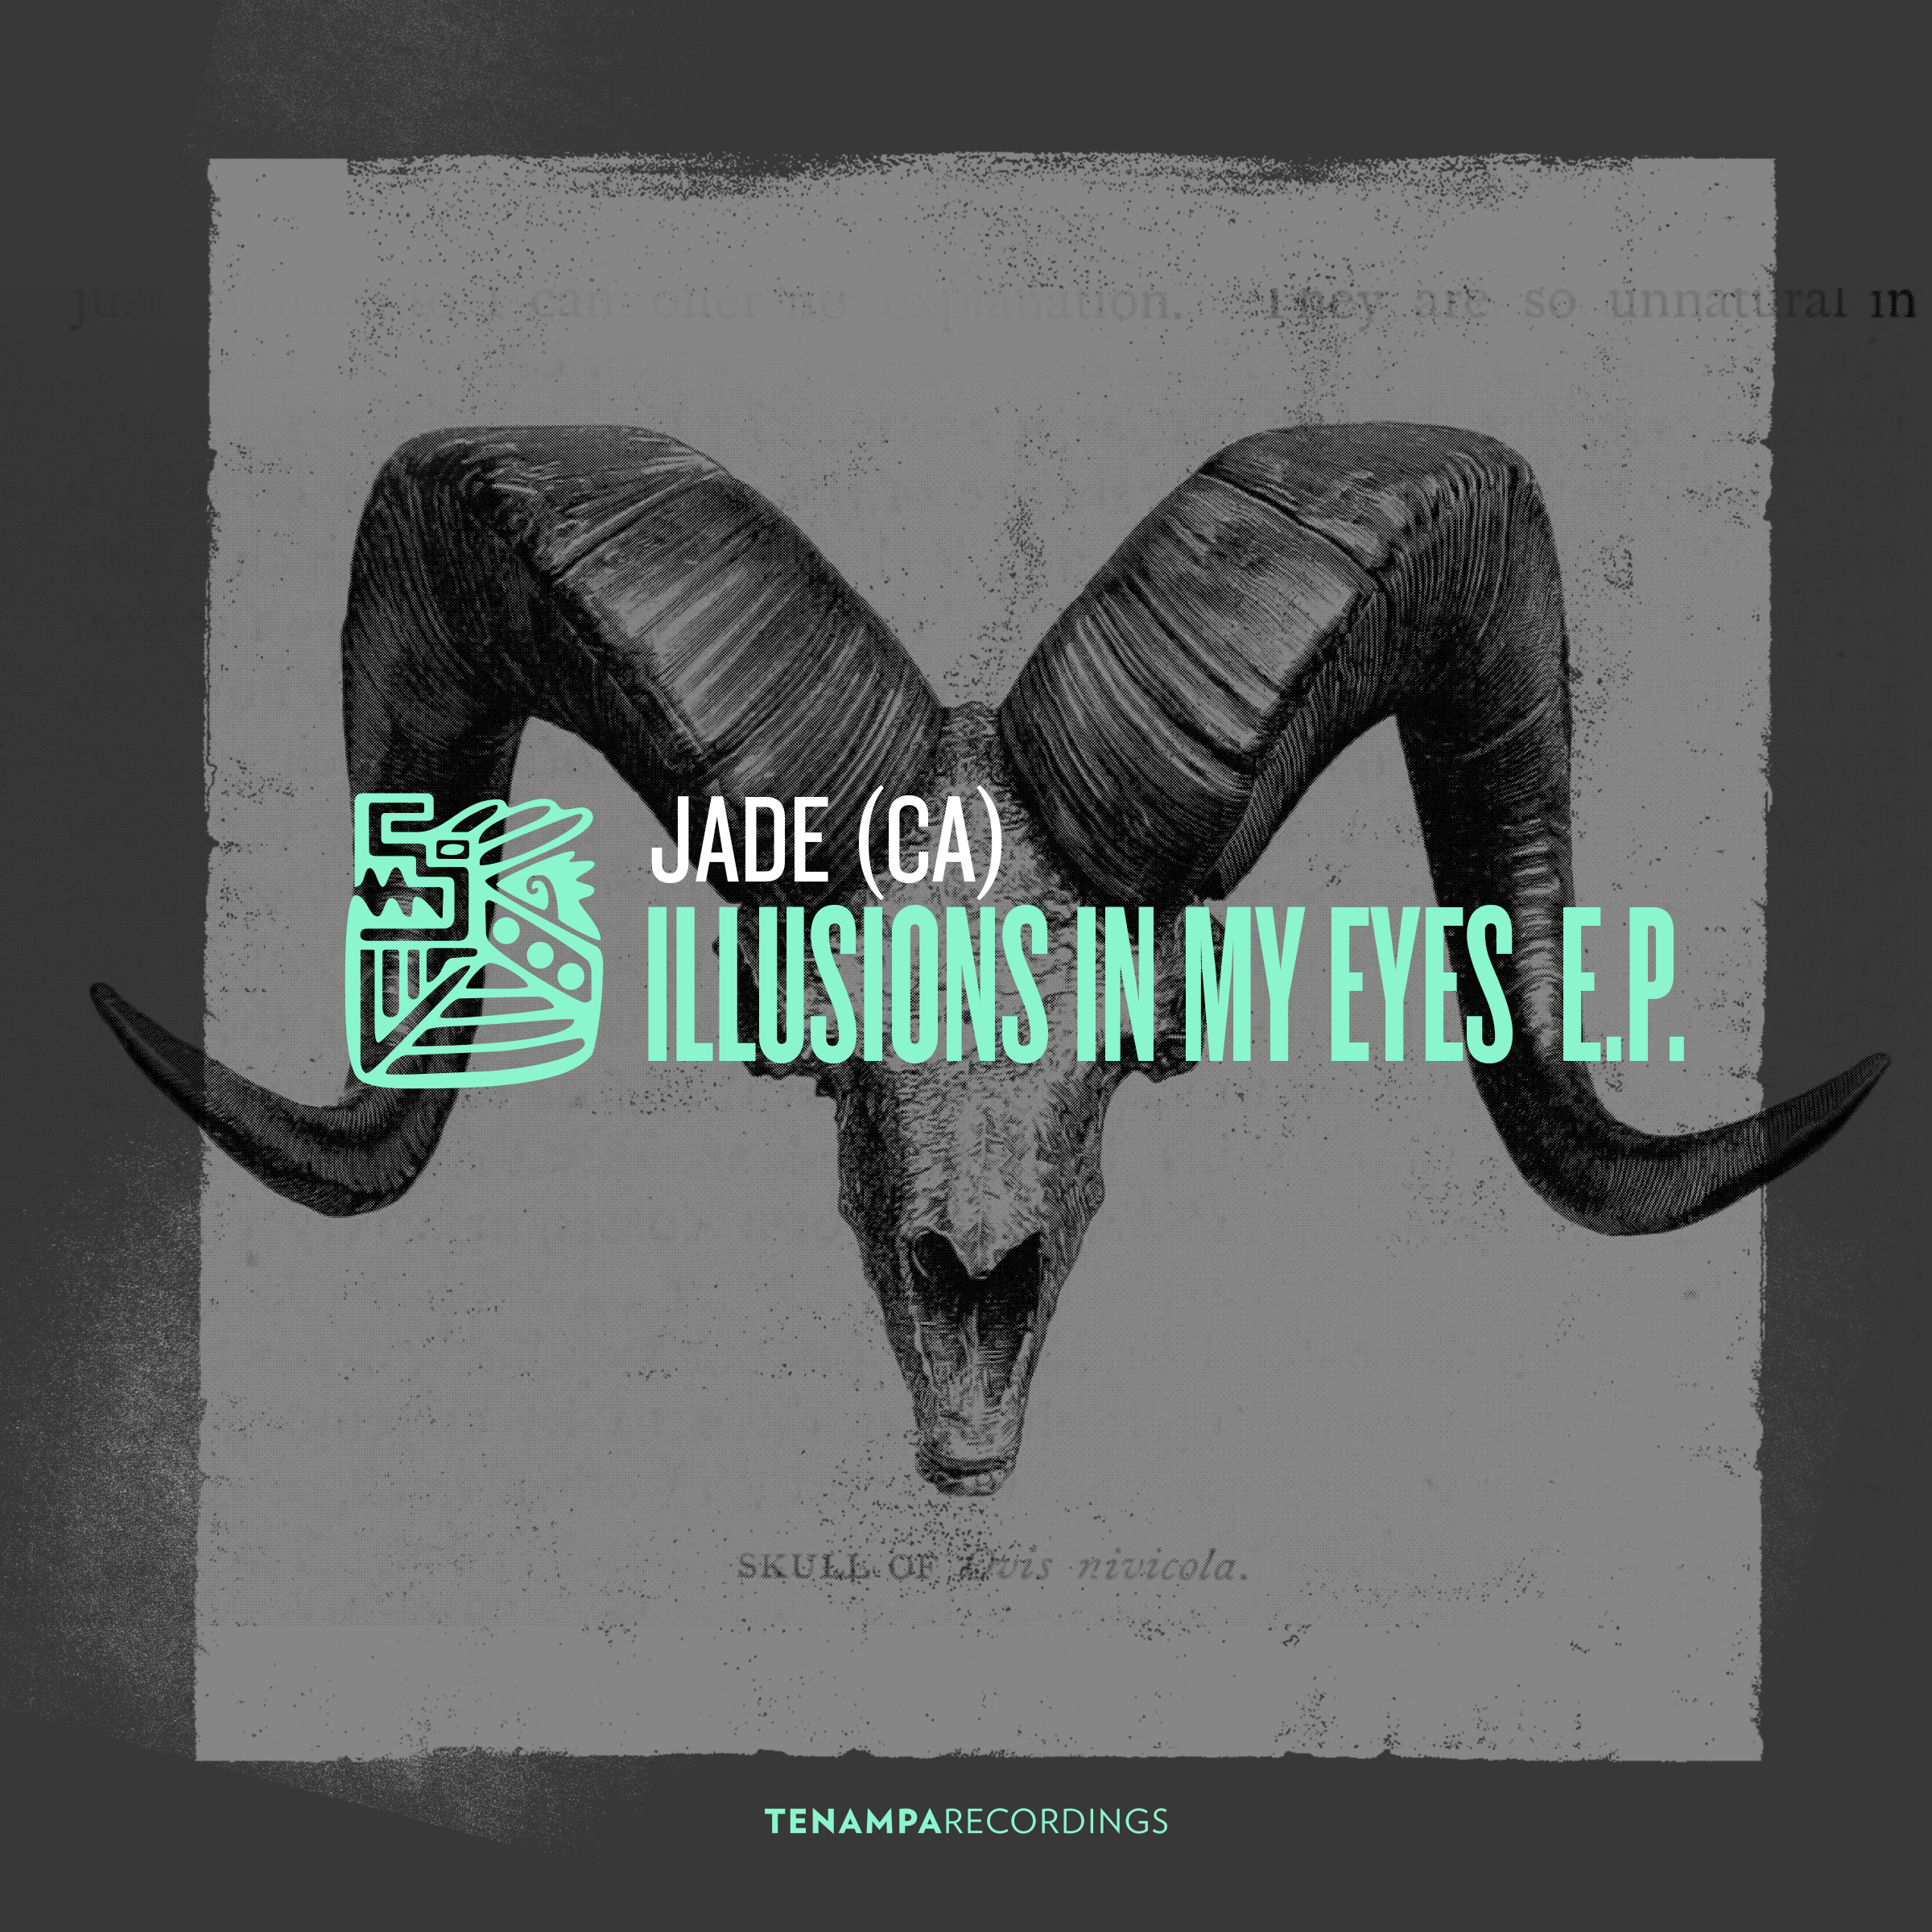 Jade (CA) – Illusions In My Eyes E.P.